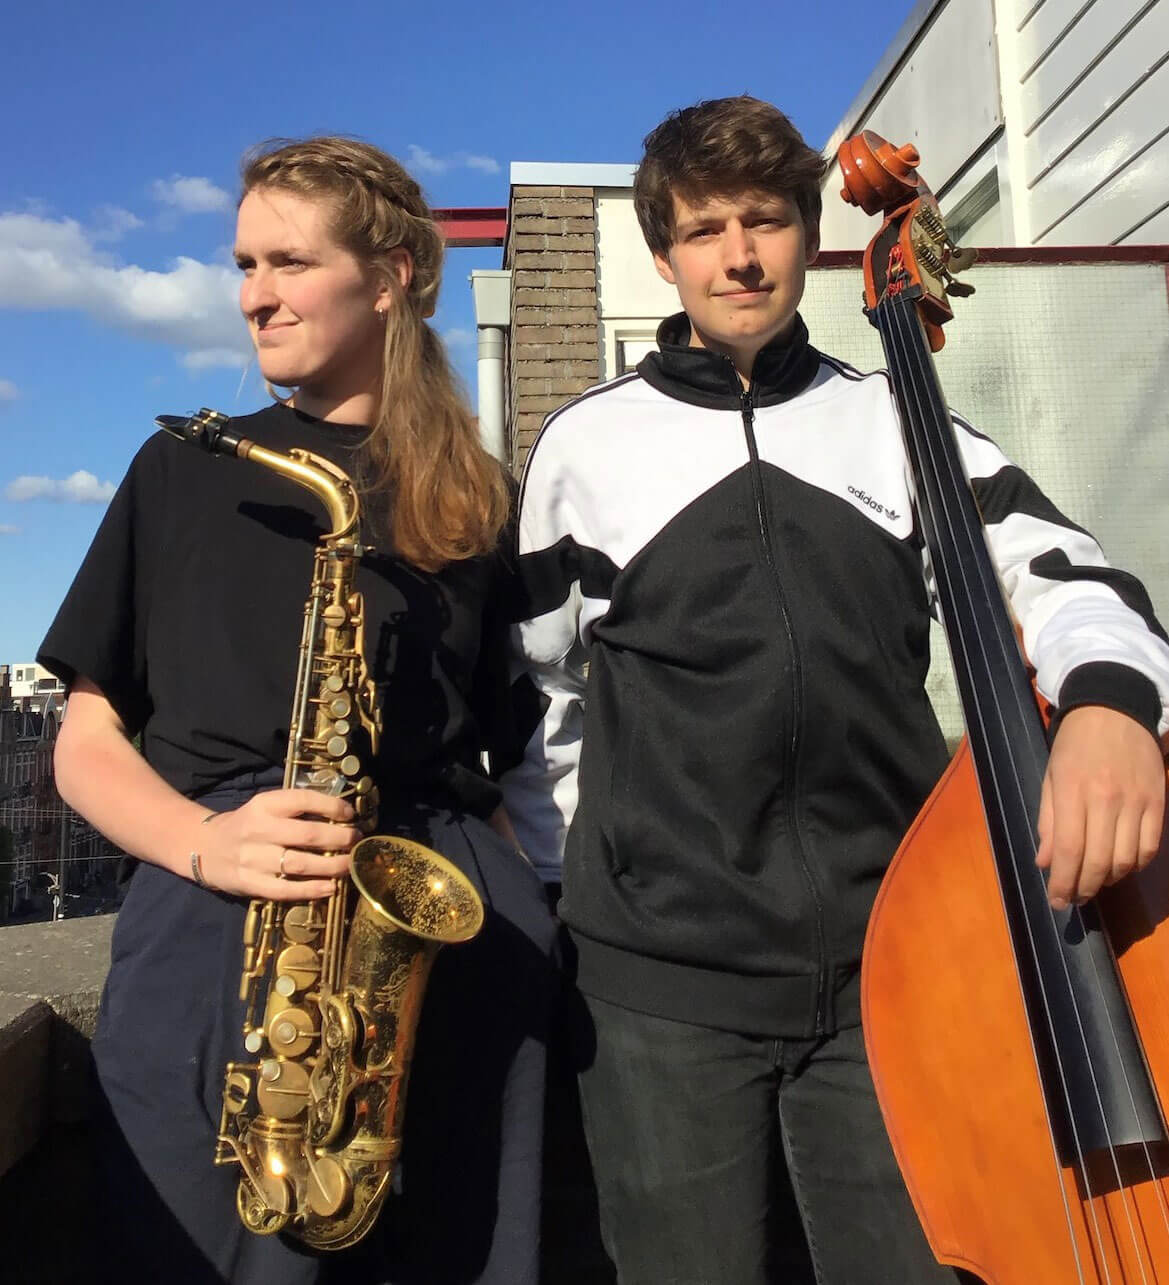 Duo-Breve-&-Mulder-op-het-Red-Light-Jazz-festival-in-Amsterdam-page